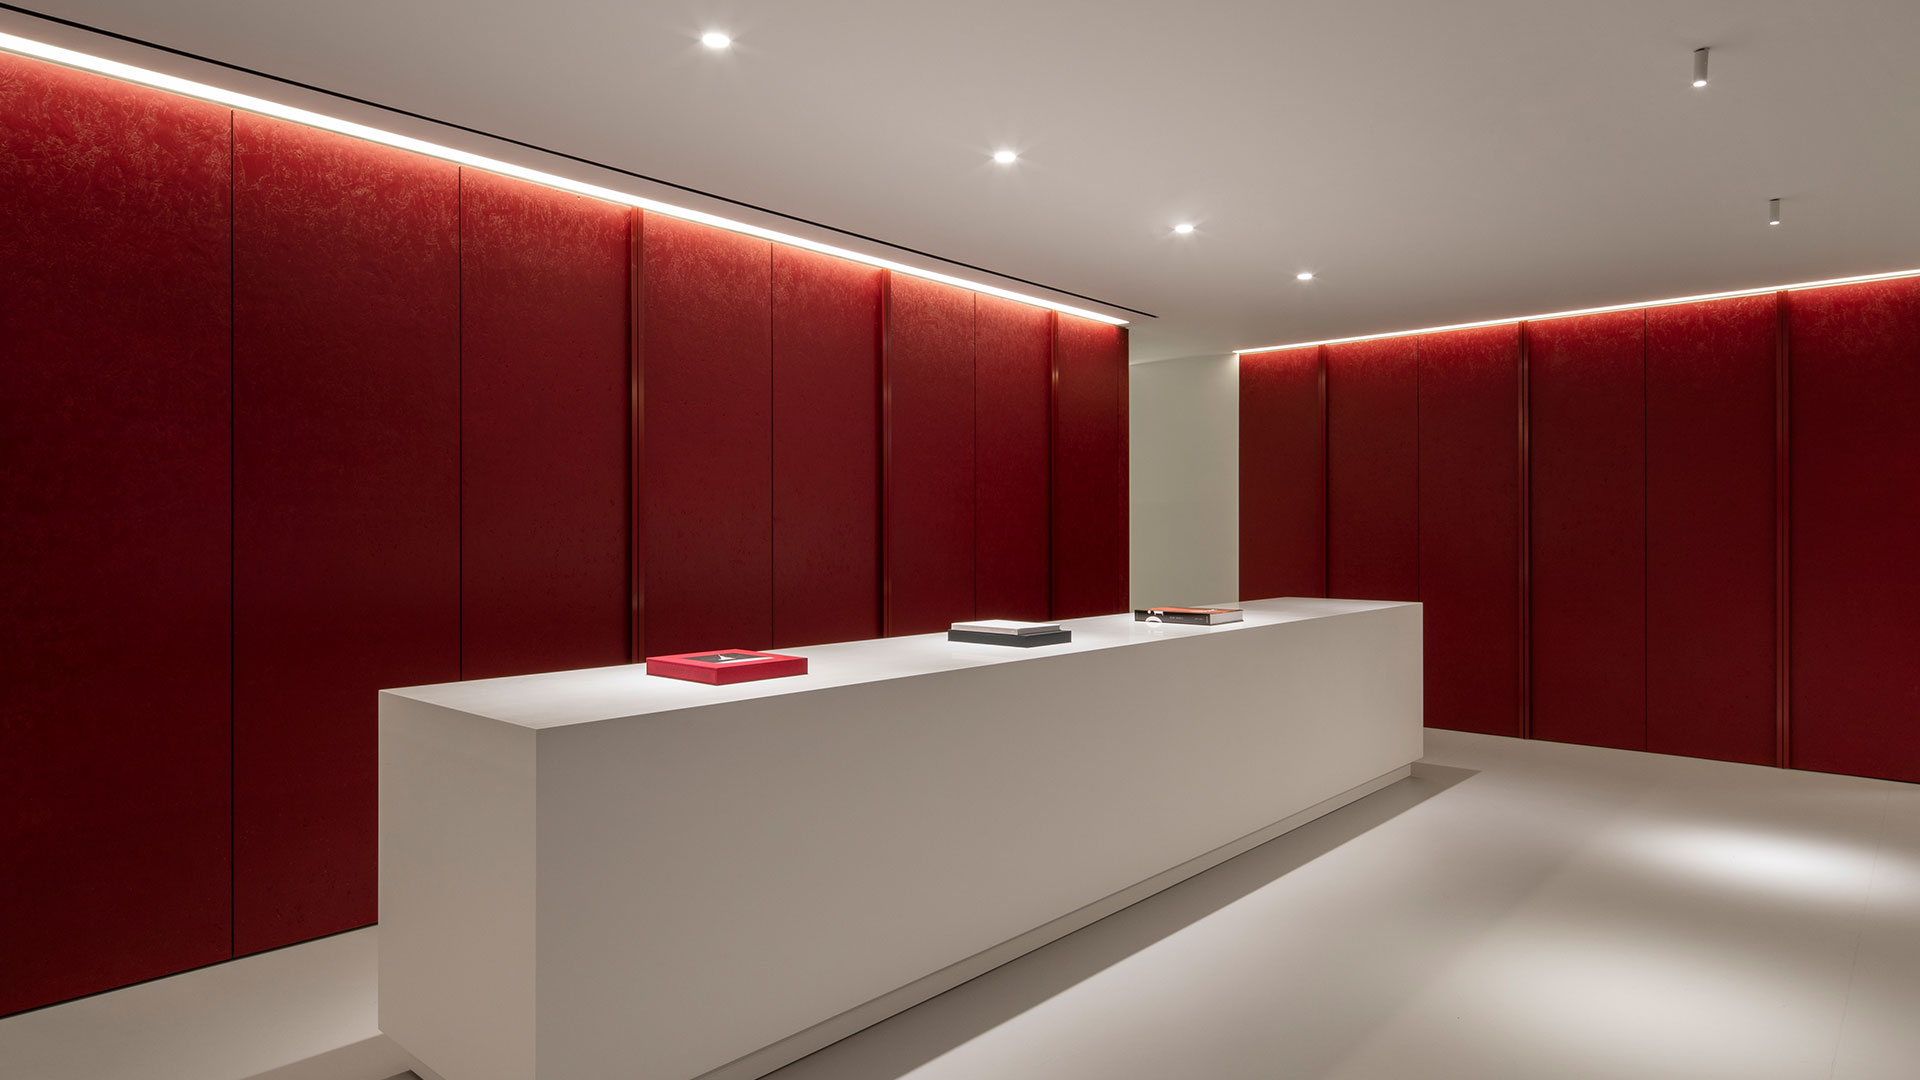 Architectural Lighting Design Low Energy Sleek Contemporary Office Red Feature Walls Merchandise Sample Table Consultants Nulty